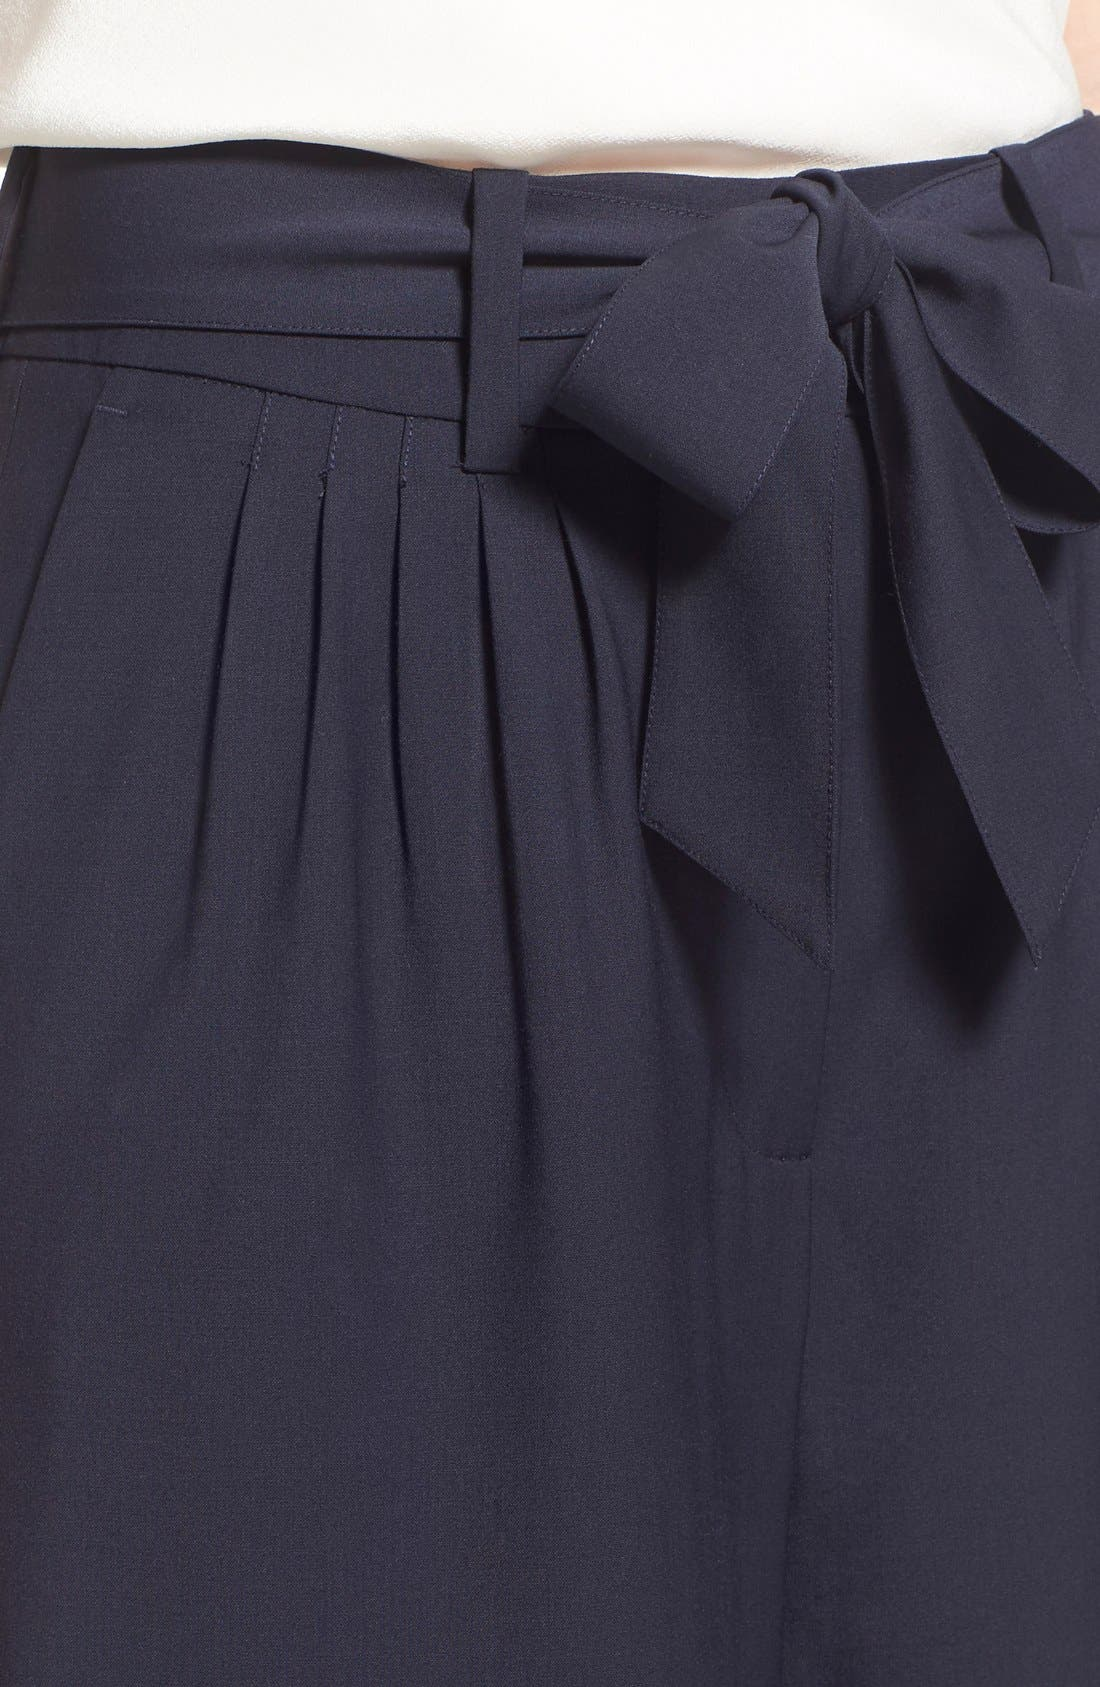 Pleat Front Trousers,                             Alternate thumbnail 5, color,                             Navy Evening